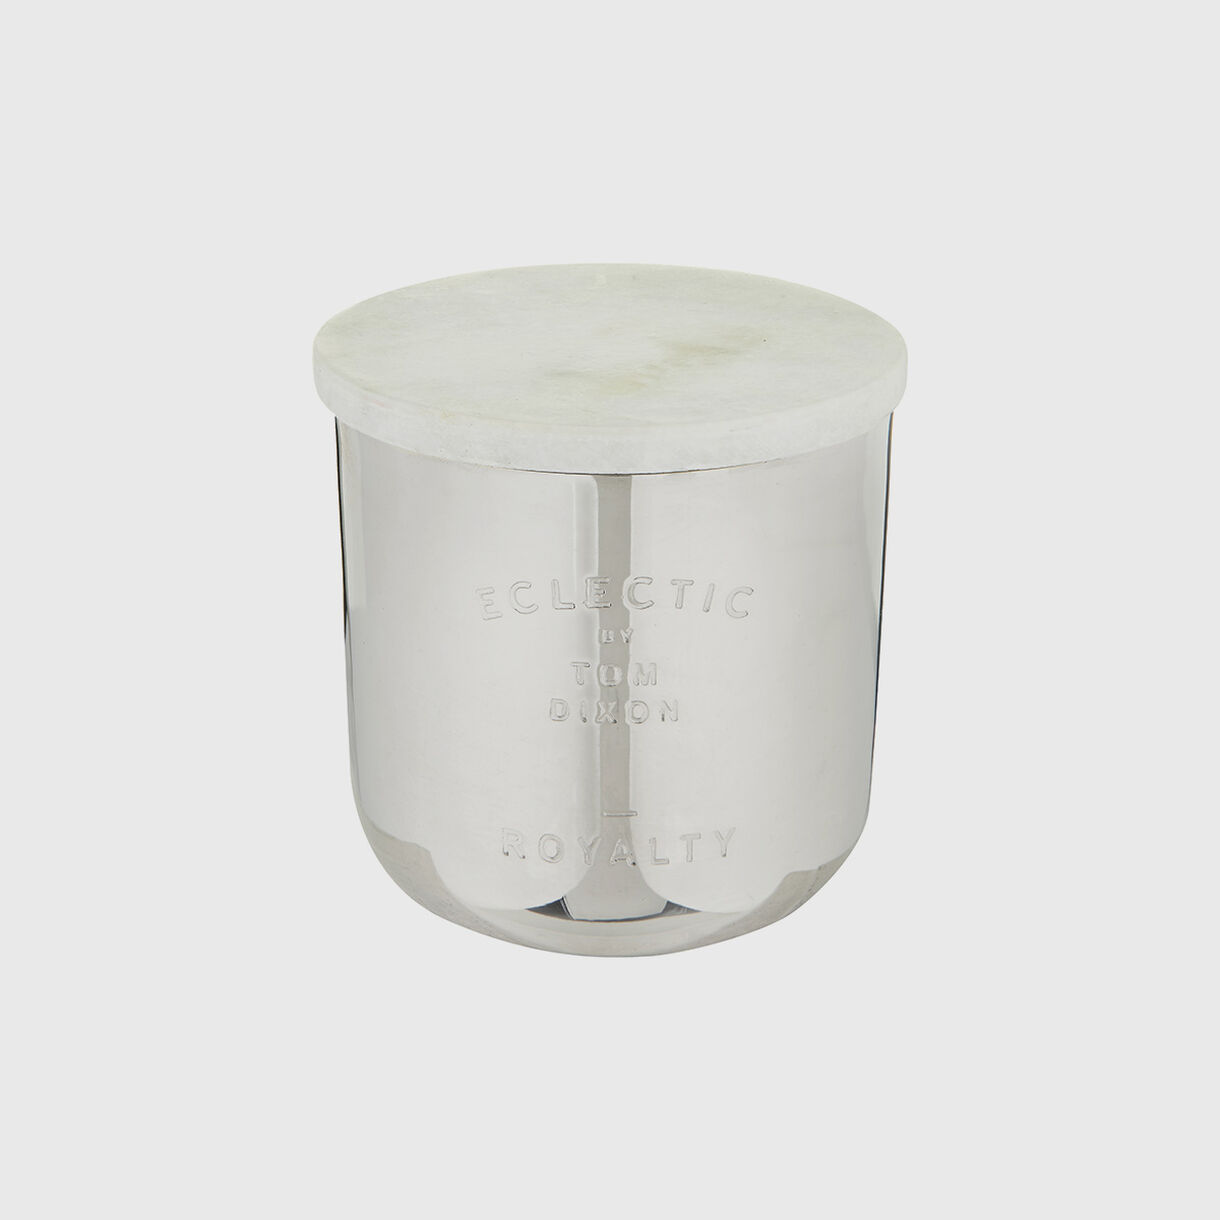 Eclectic Royalty Candle, Medium